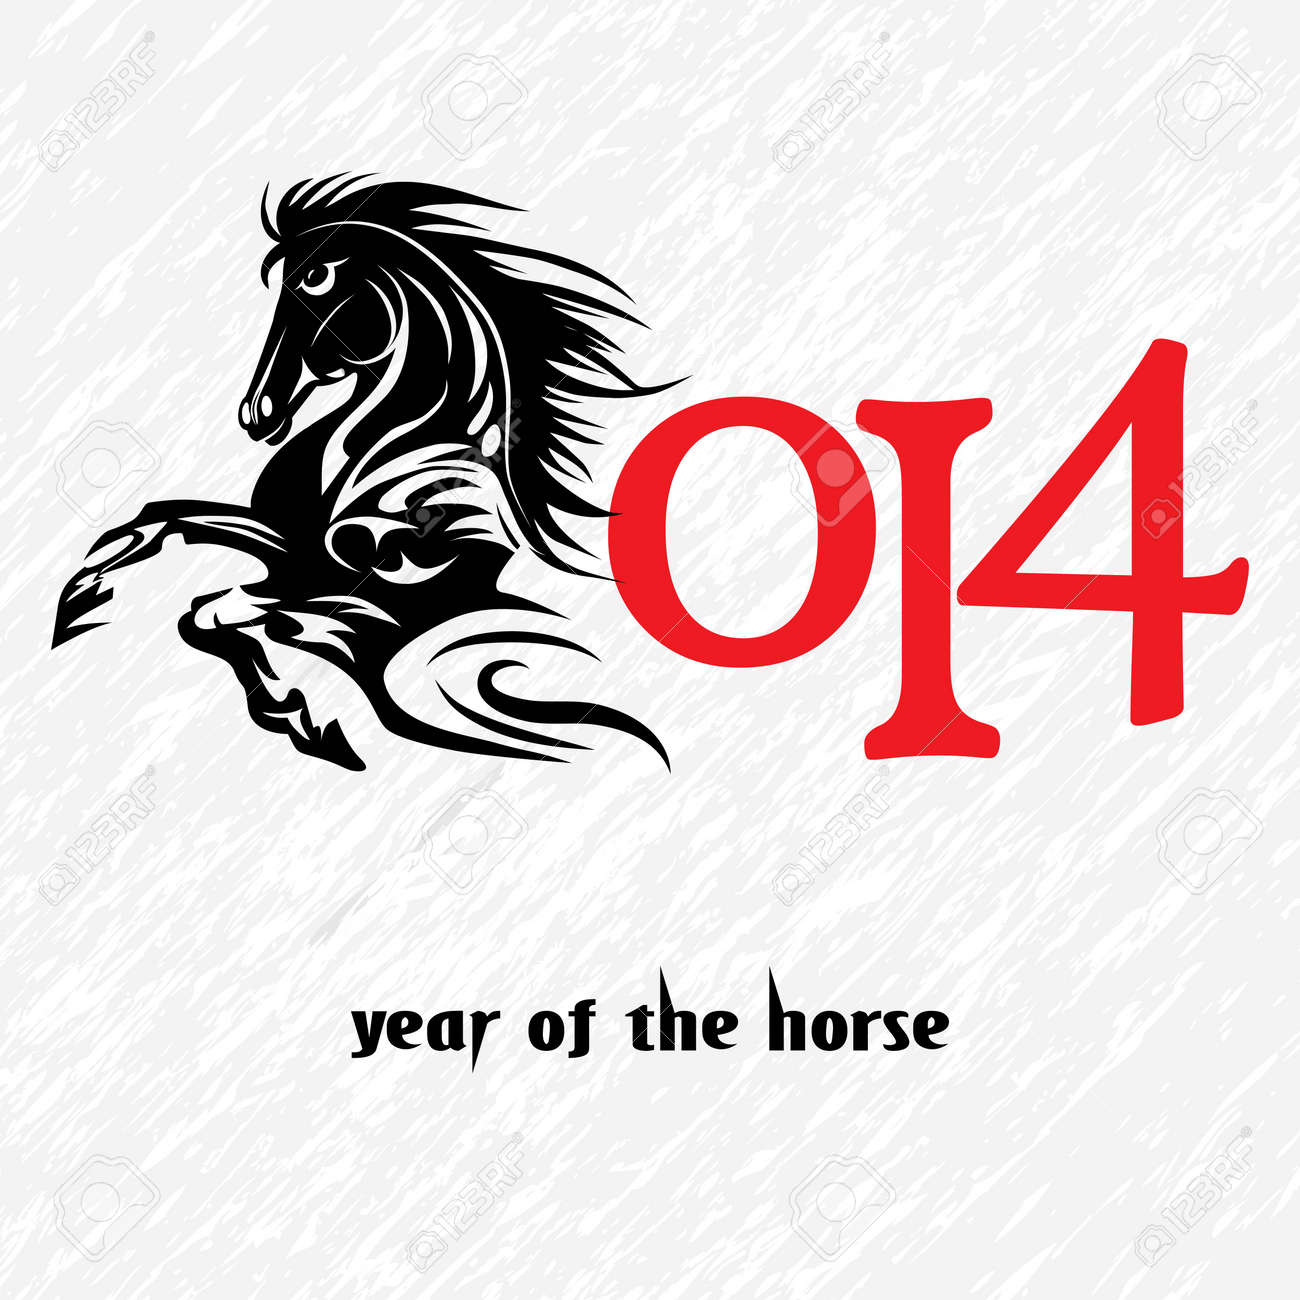 Horse 2014 Year Chinese Symbol Illustration Image Tattoo Design Royalty Free Cliparts Vectors And Stock Illustration Image 21490431